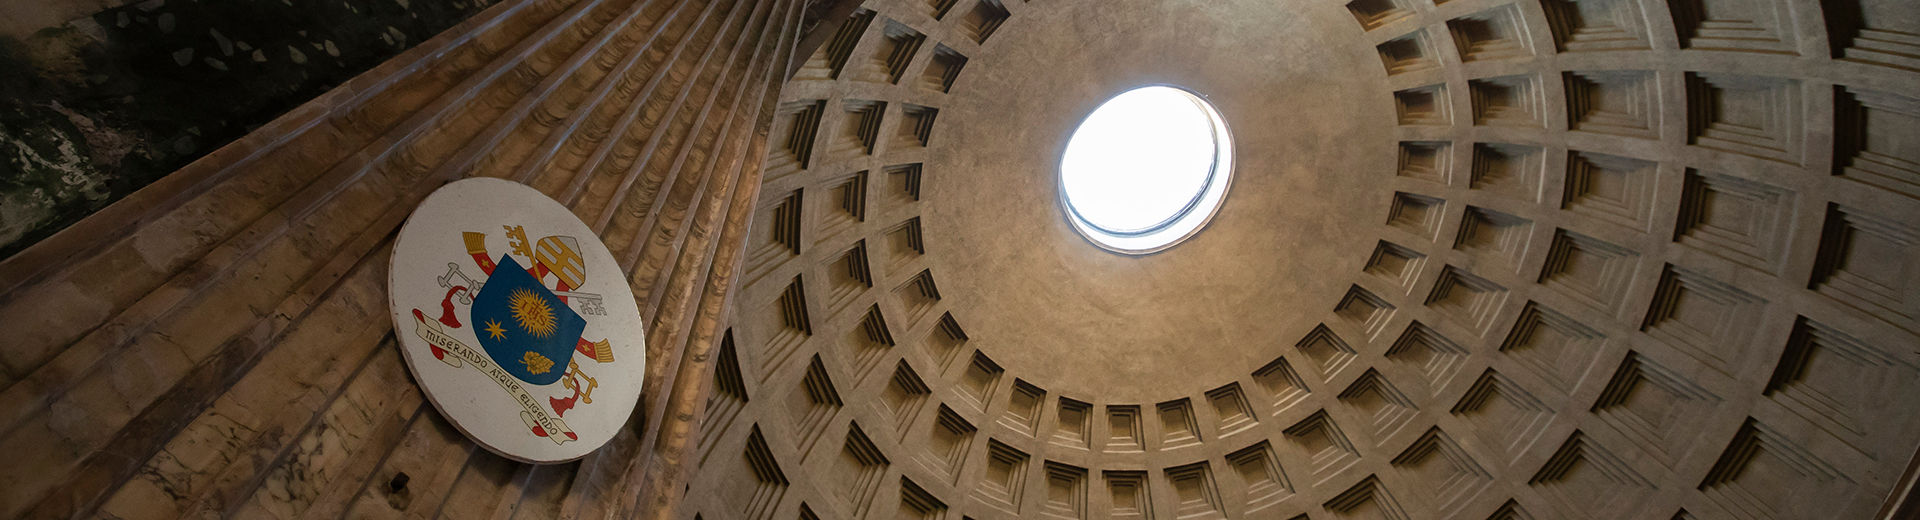 dome on Pantheon from below